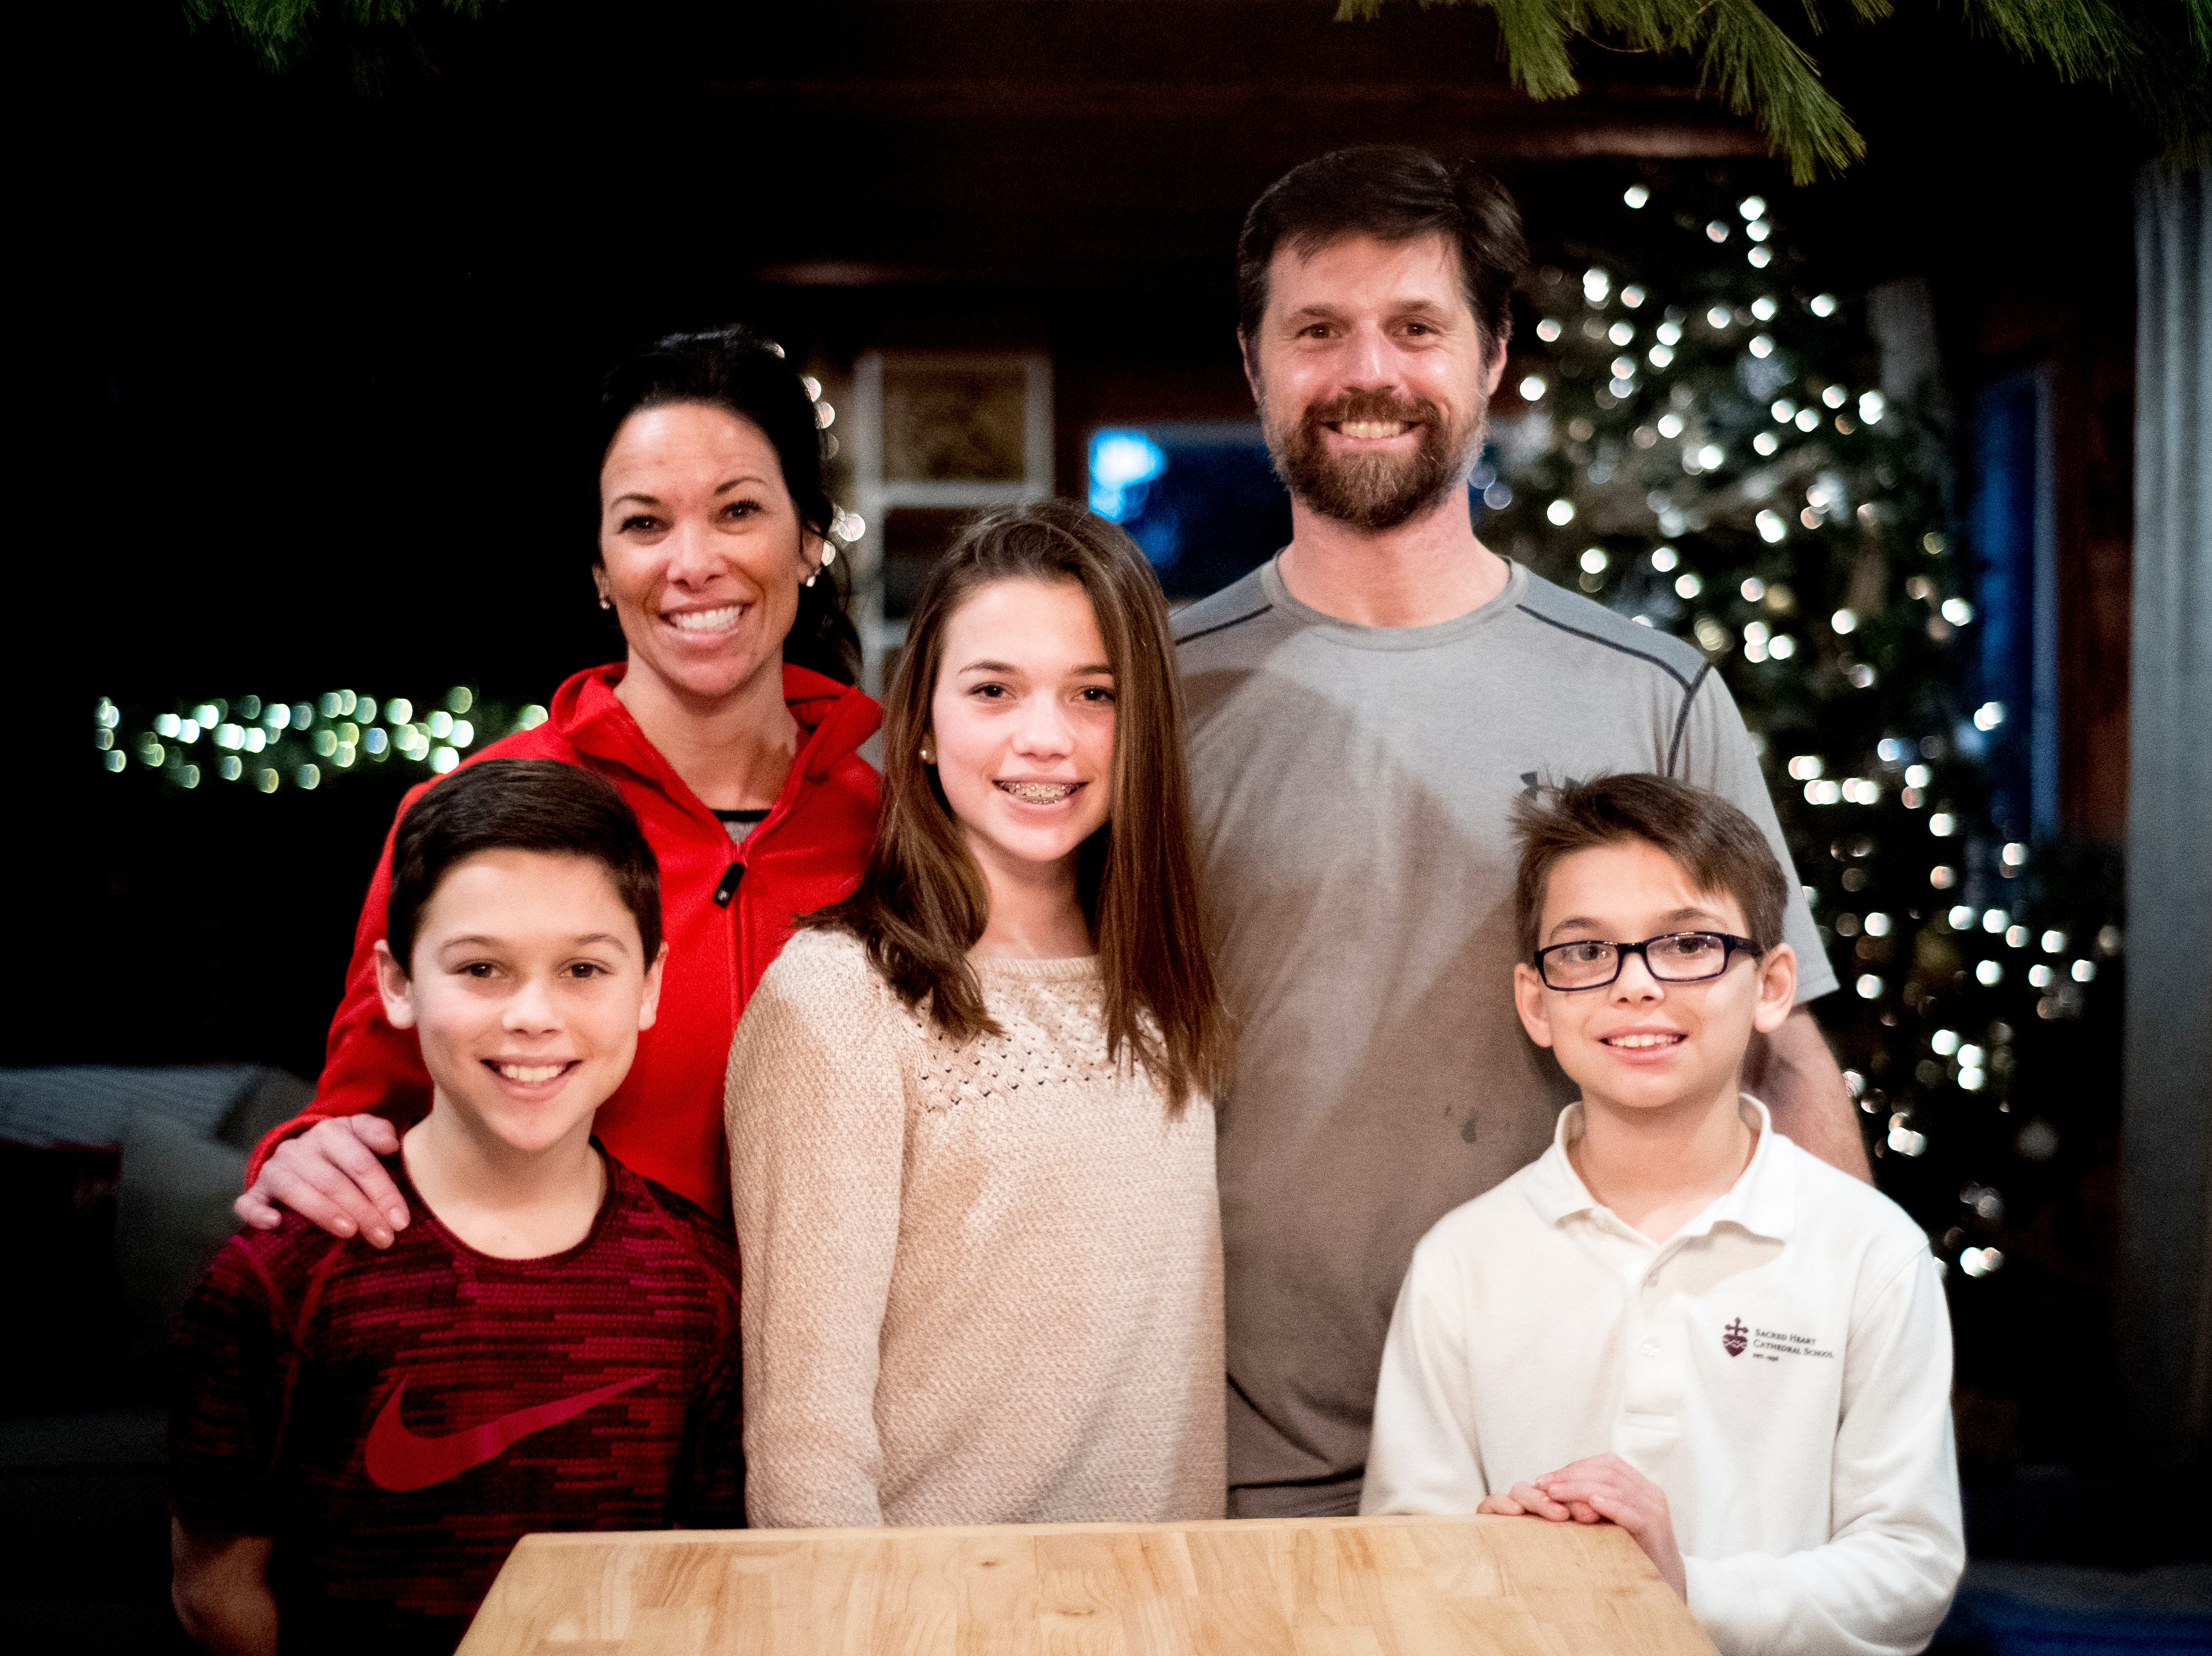 From left, 11-year-old Baylor, mom Lydia, 13-year-old Olivia, dad Matt, and 9-year-old Waylon Greiner pose for a family photo inside their home on Breezy Ridge Trail in West Knoxville, Tennessee on Thursday, December 20, 2018.